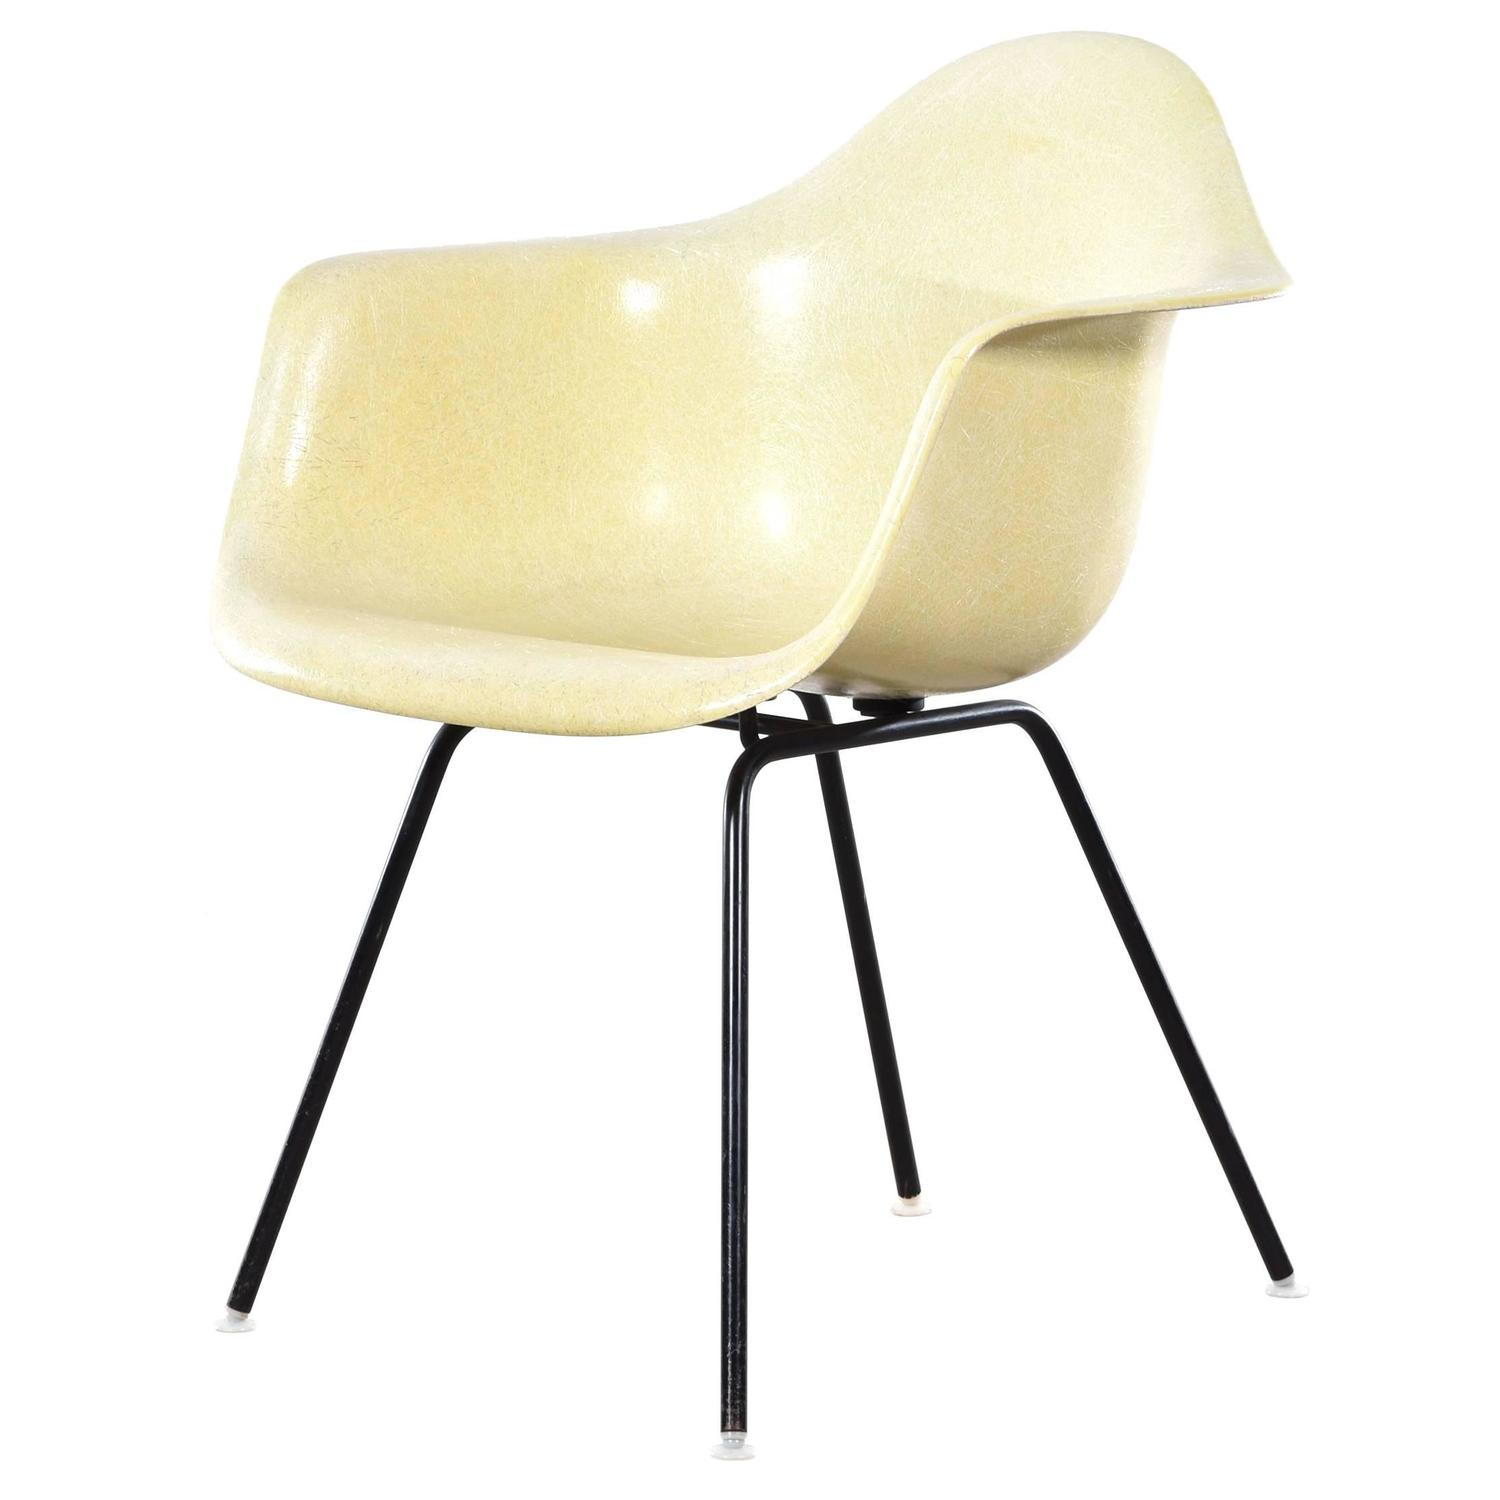 Eames Lemon Yellow DAX Dining Chair for Herman Miller at  : LY1611DAX001Borgz from www.1stdibs.com size 1500 x 1500 jpeg 73kB